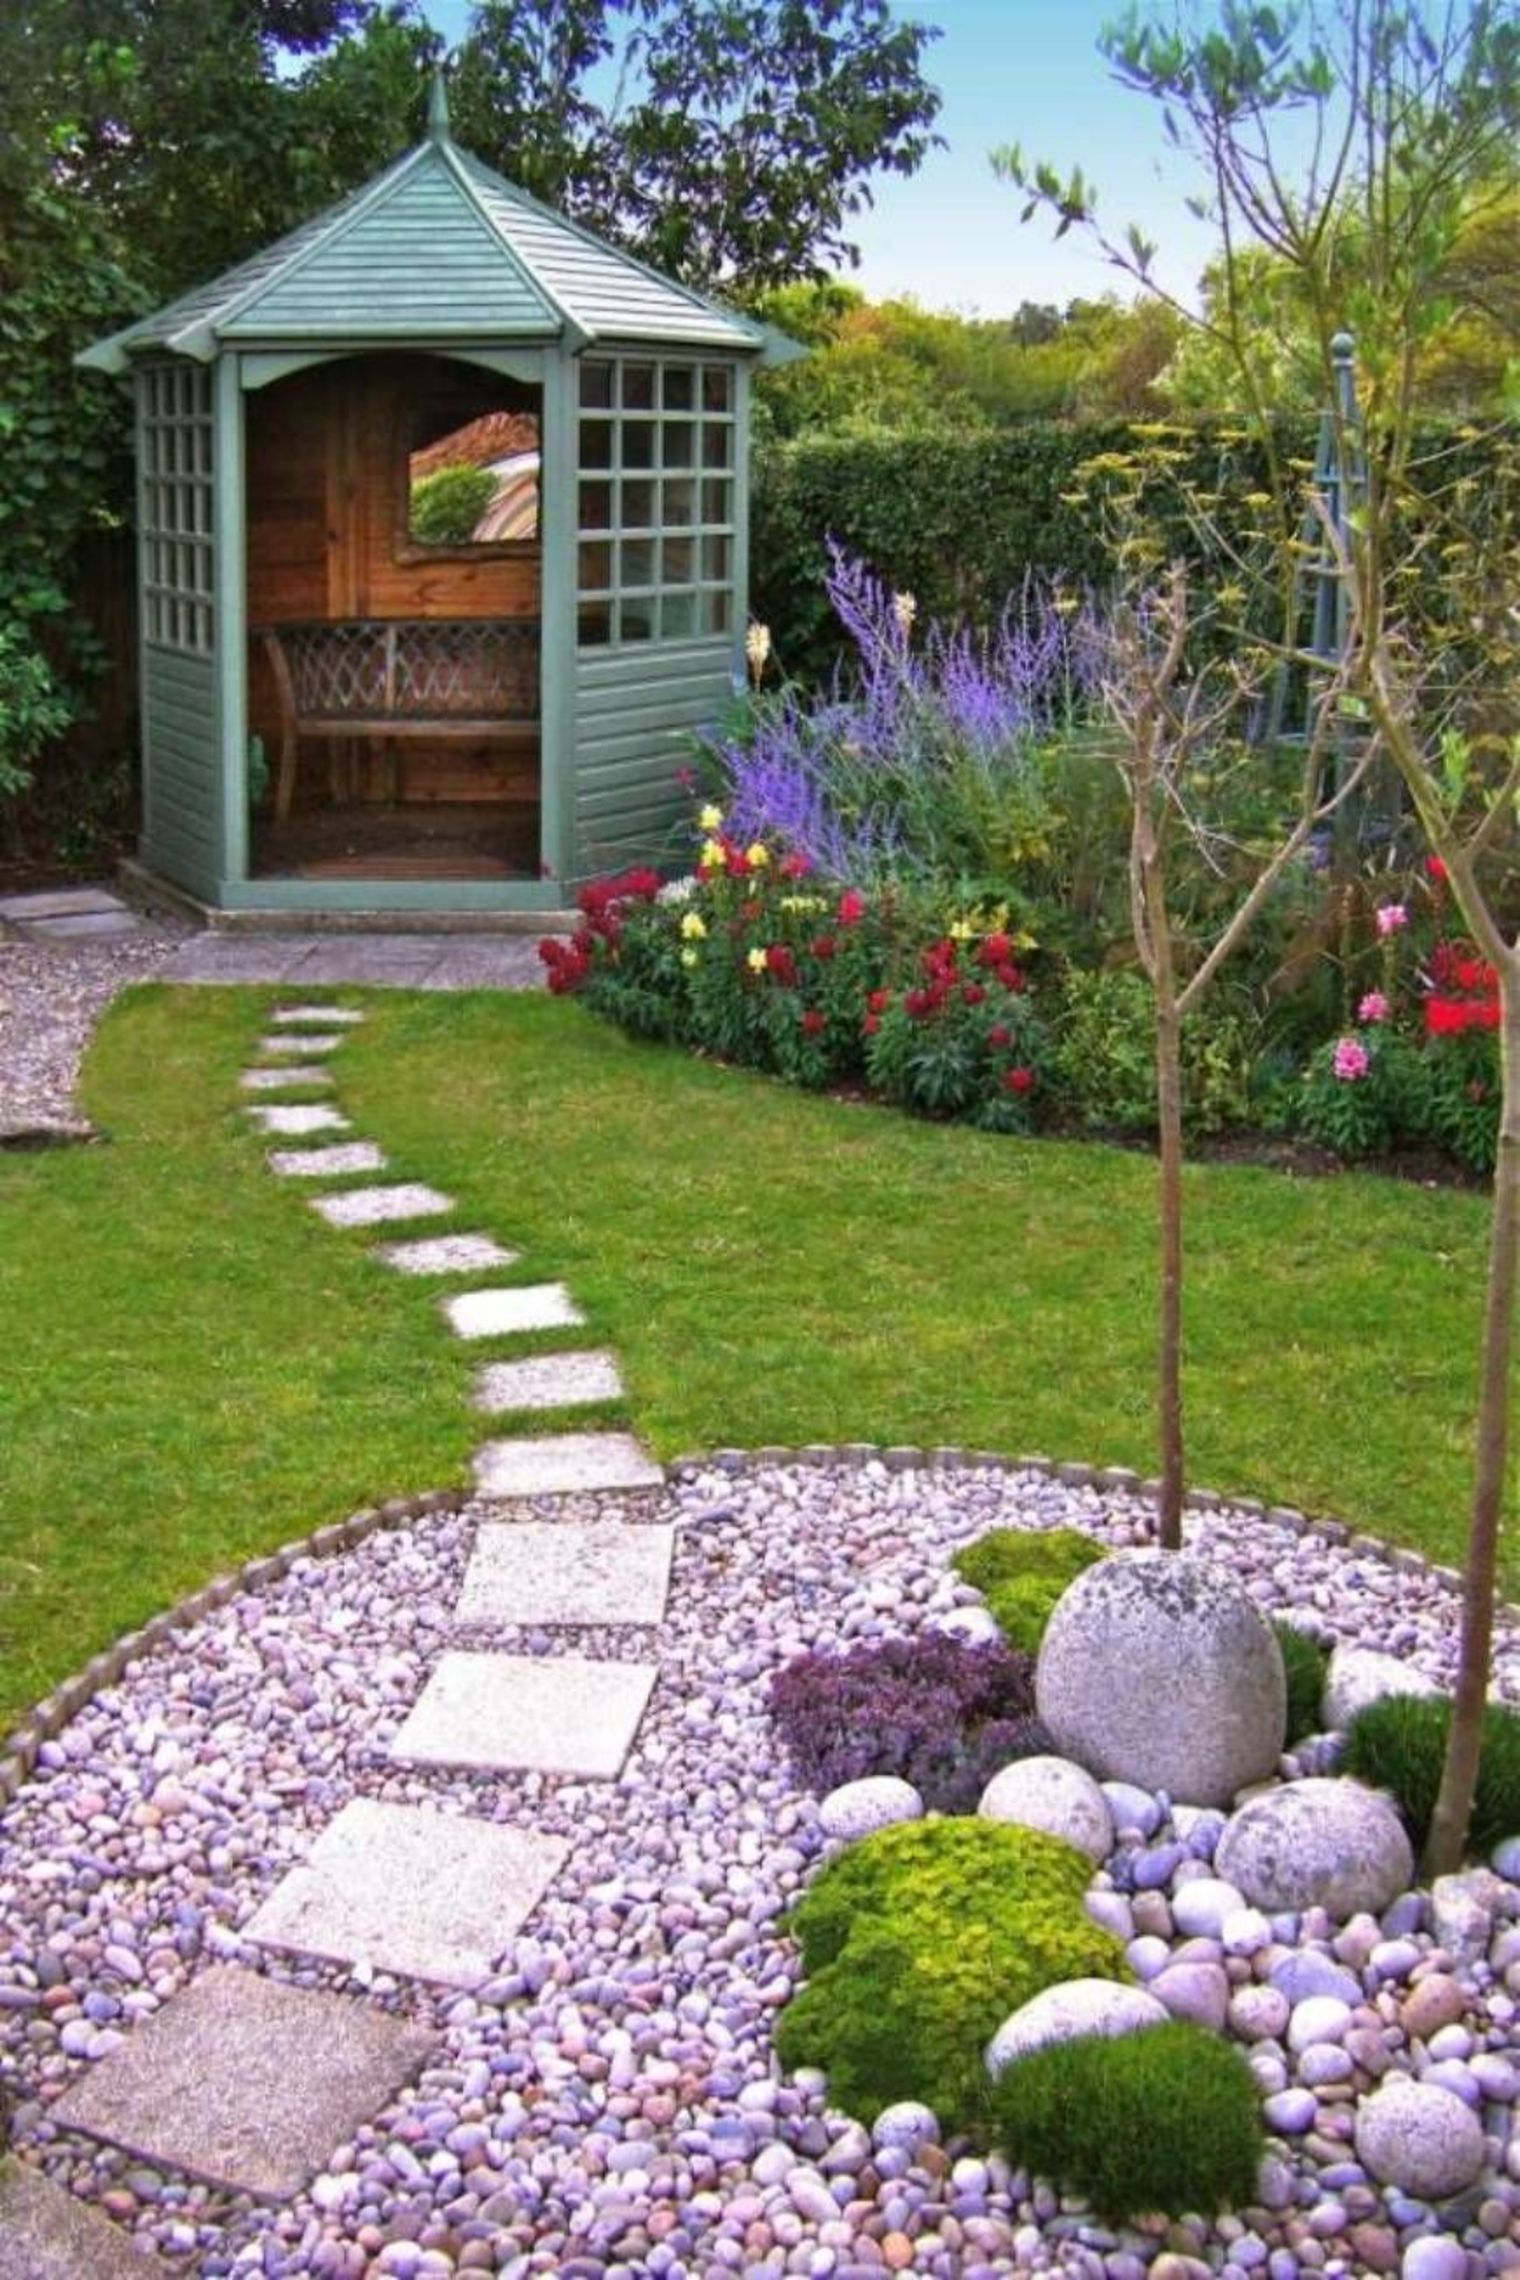 30 Best Decorative Stepping Stones (Ideas and Designs) 2020 on Stepping Stone Patio Ideas  id=82587